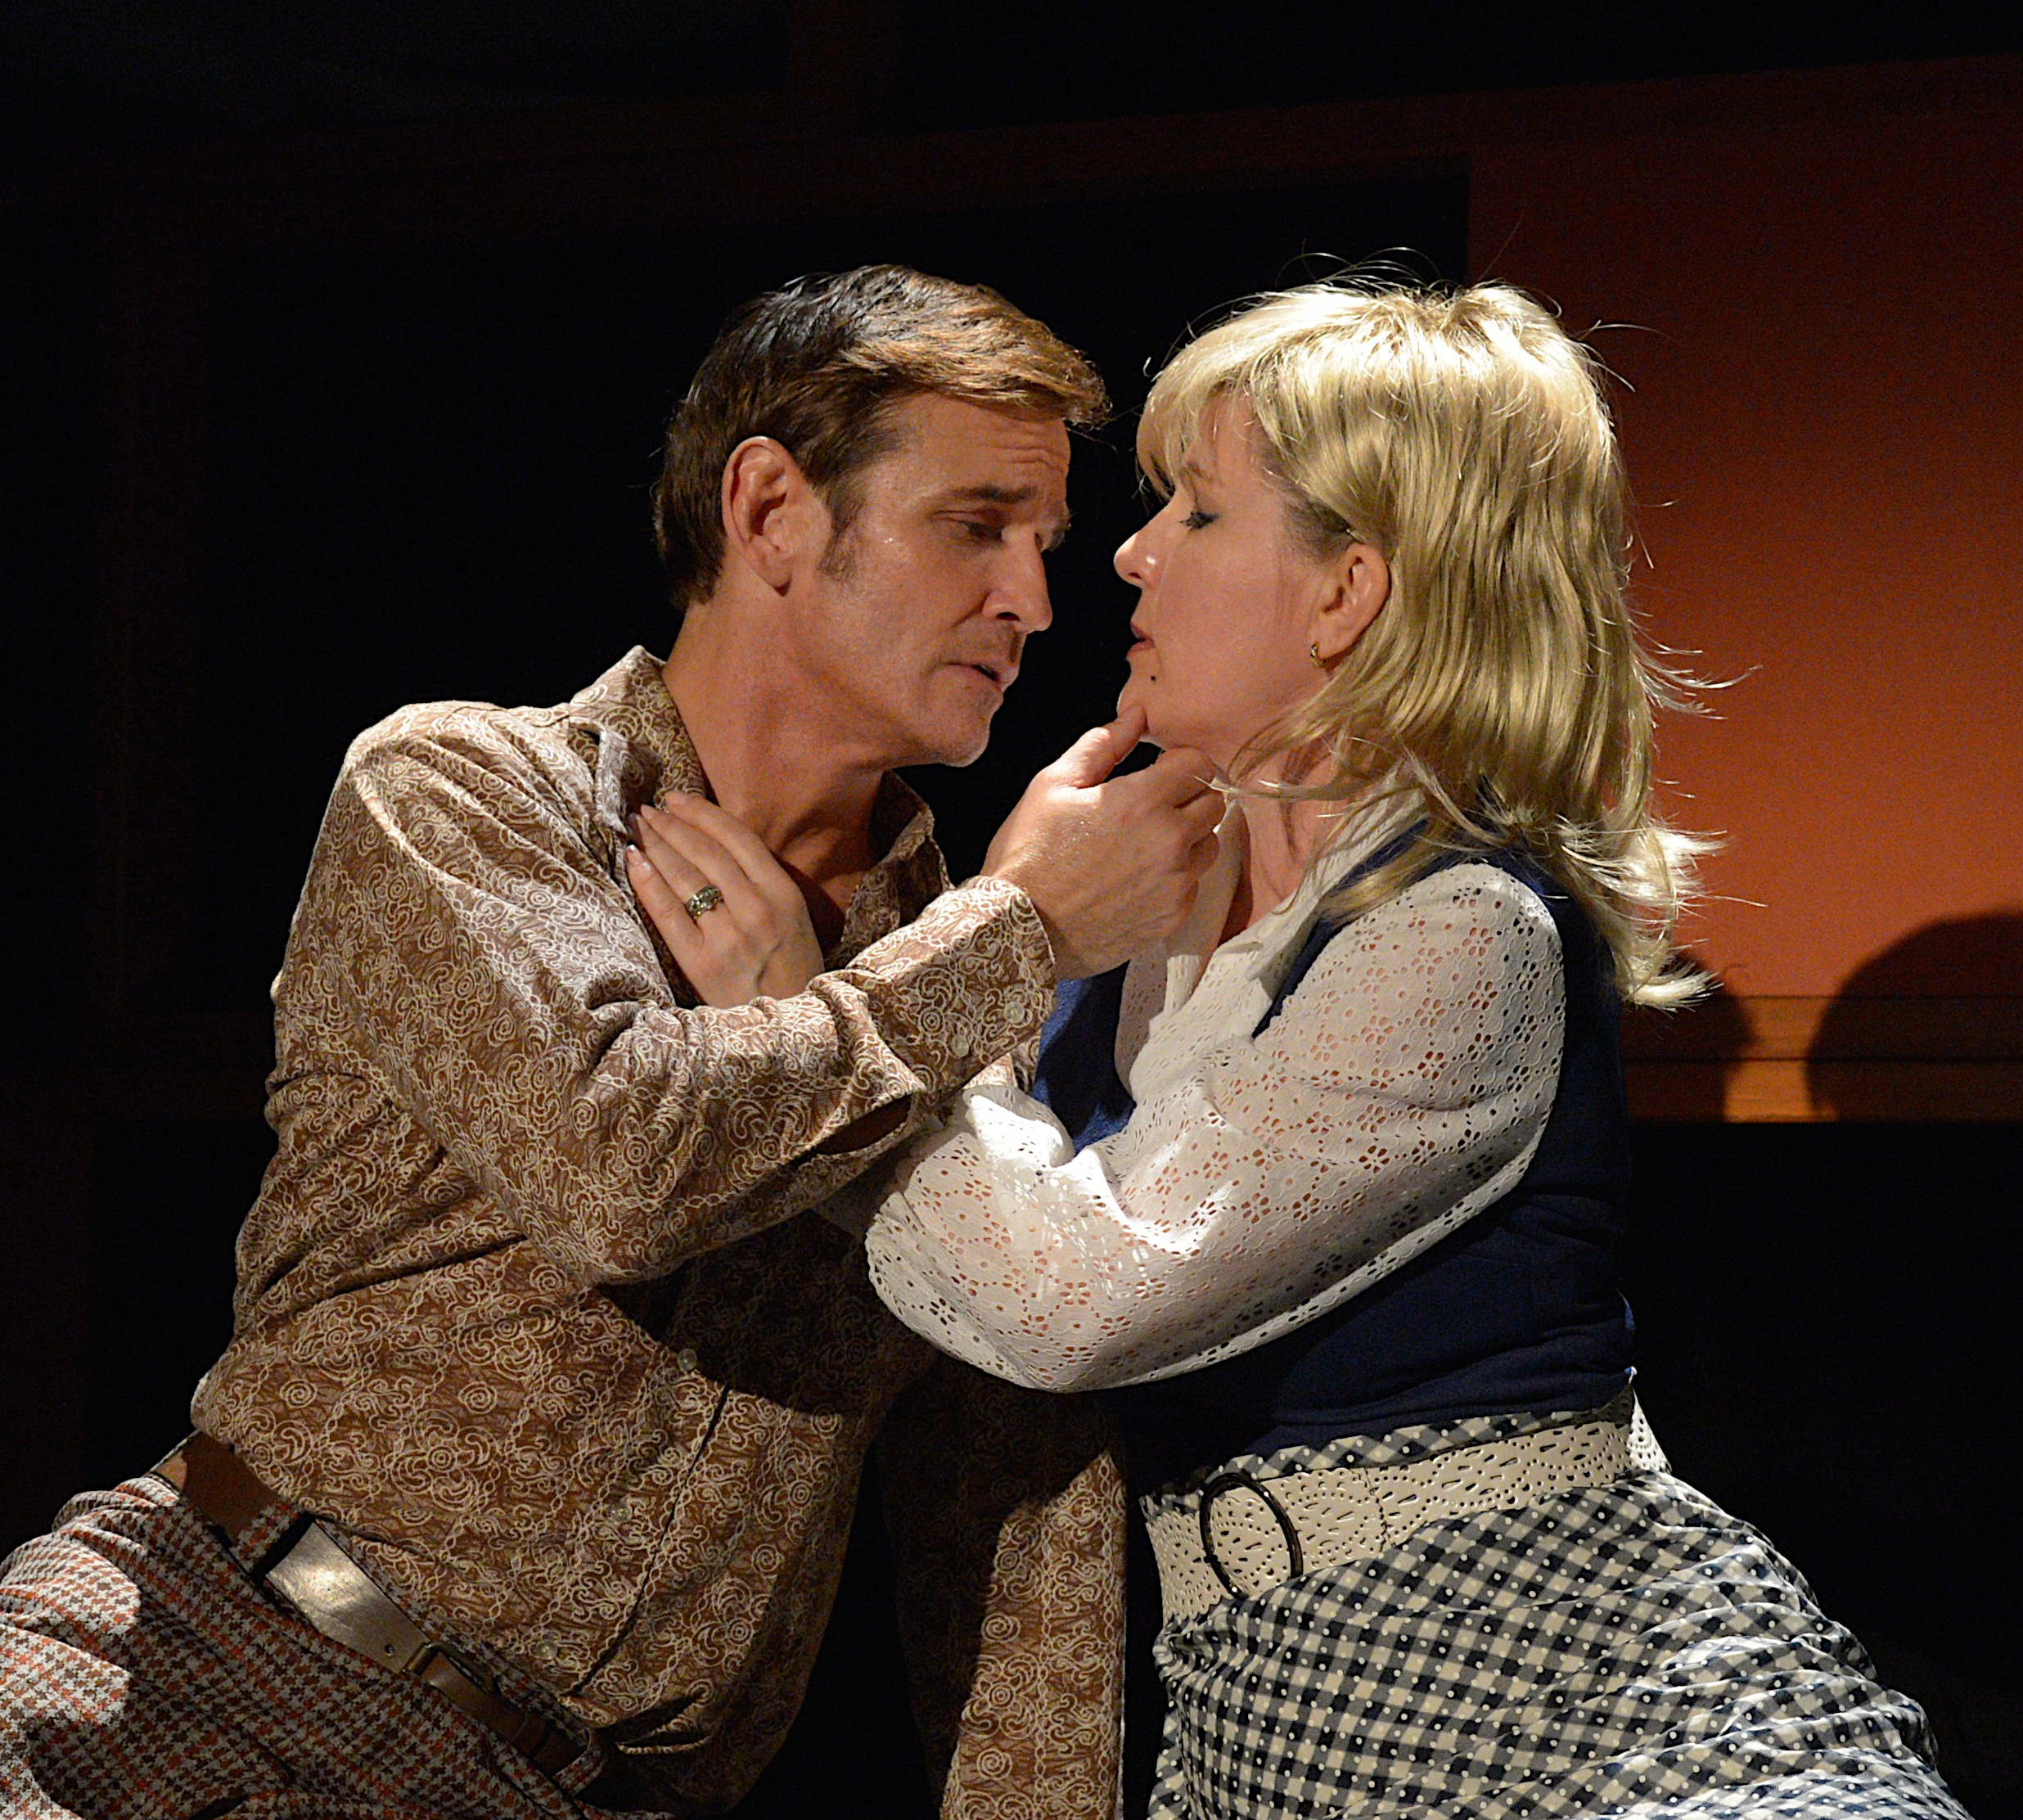 Sean McDermott (Mike) and Lori Hammel (Carol) - photo by Tom Henning